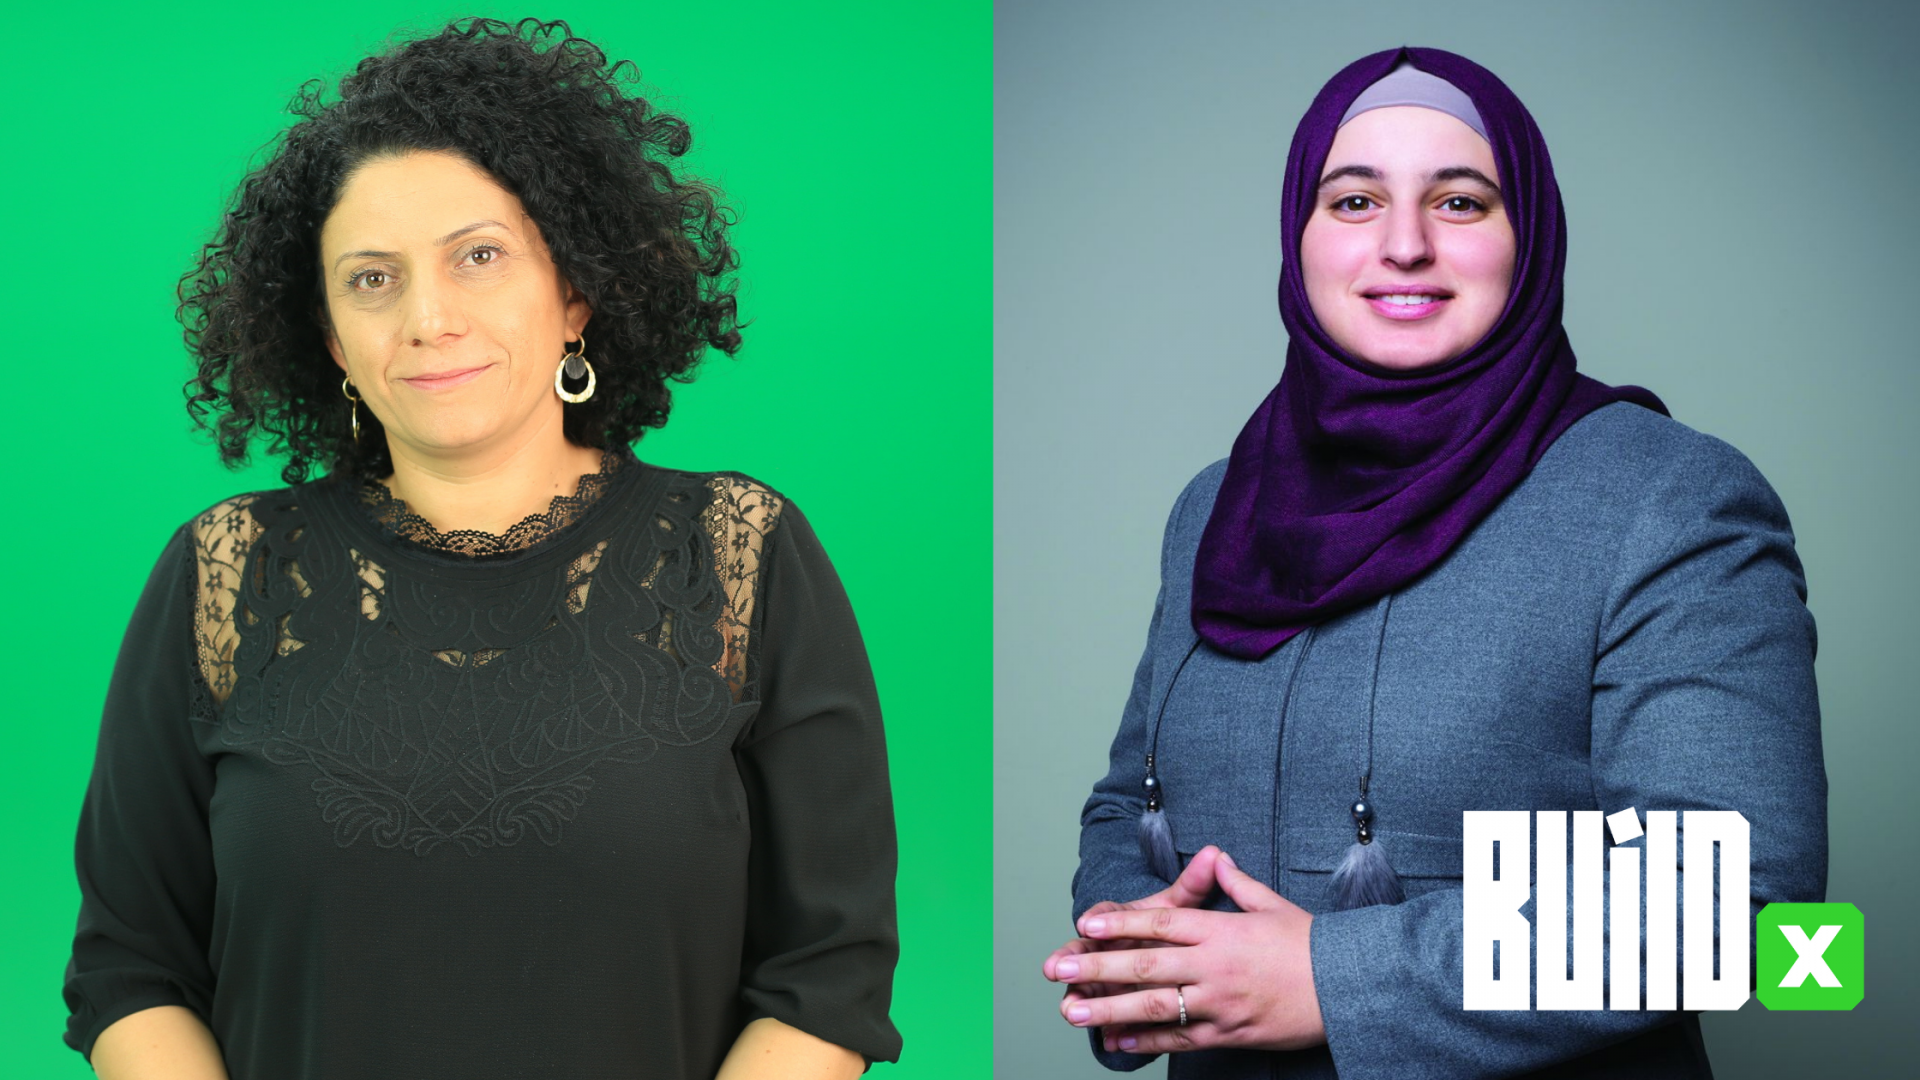 BUILDx: We met with two incredible Palestinian Social Entrepreneurs!